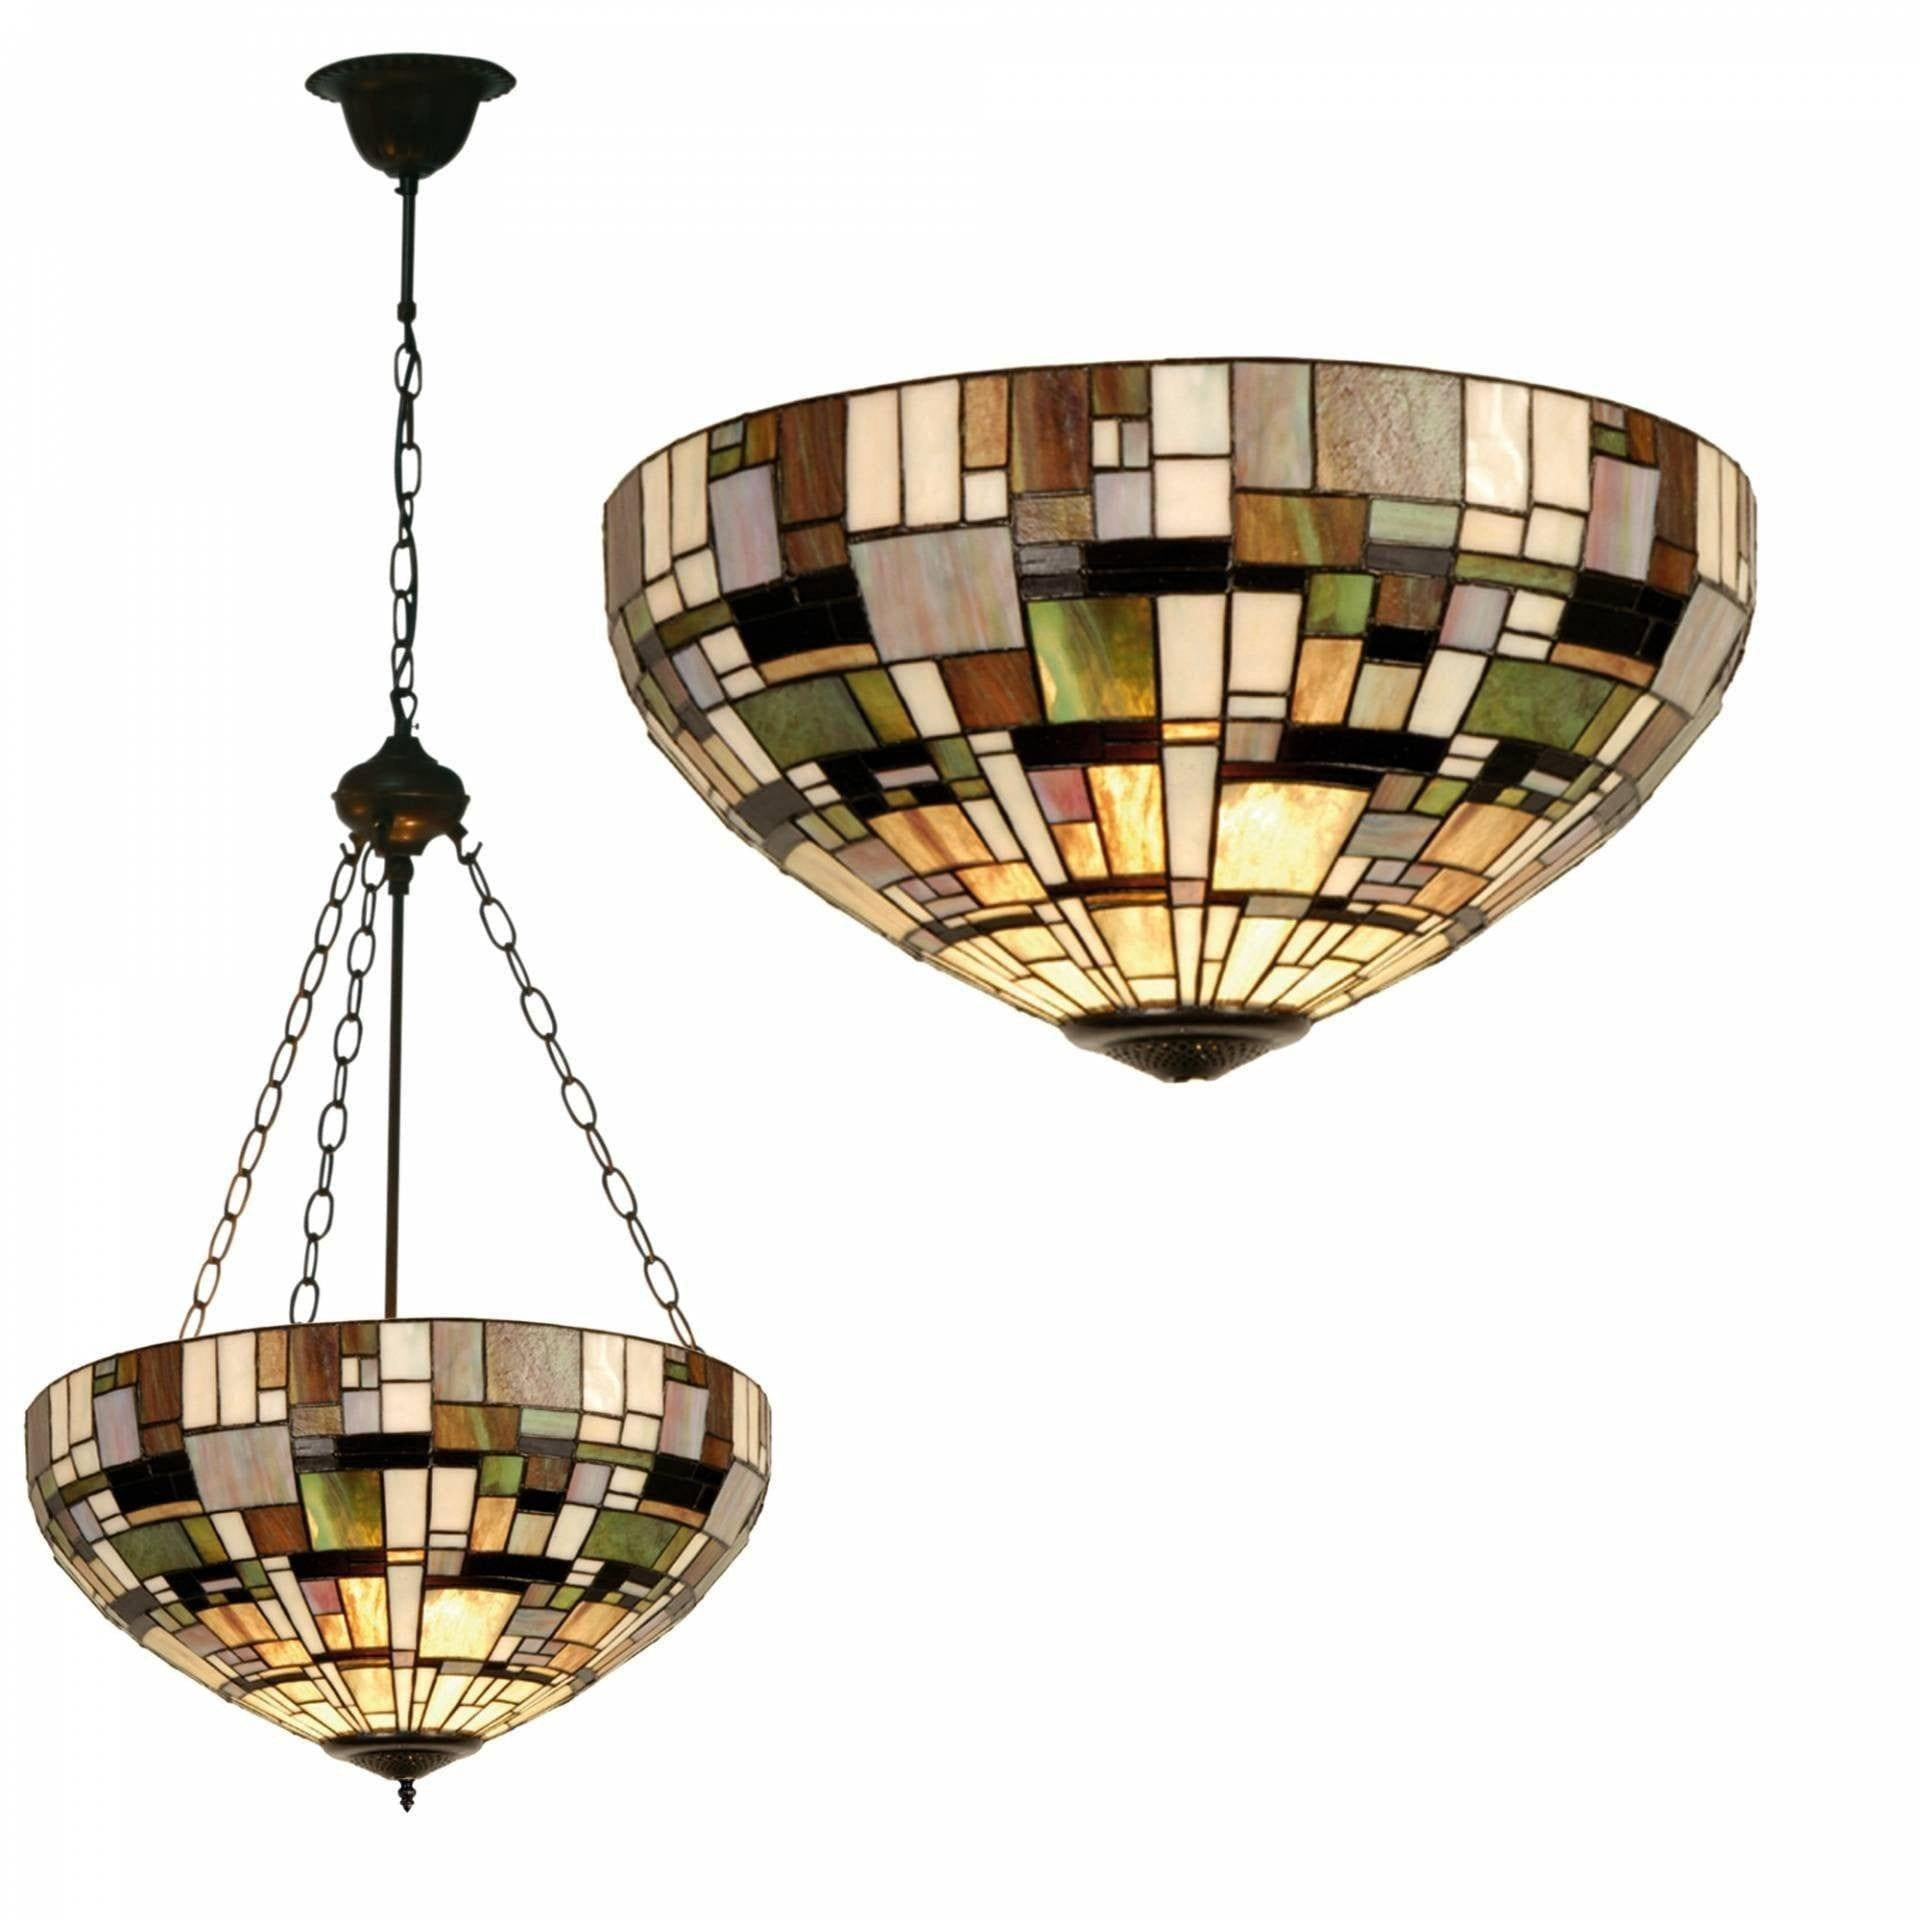 Tiffany Ceiling Lights Falling Water Inverted Ceiling Light Fancy Chain Tiffany Lighting Direct